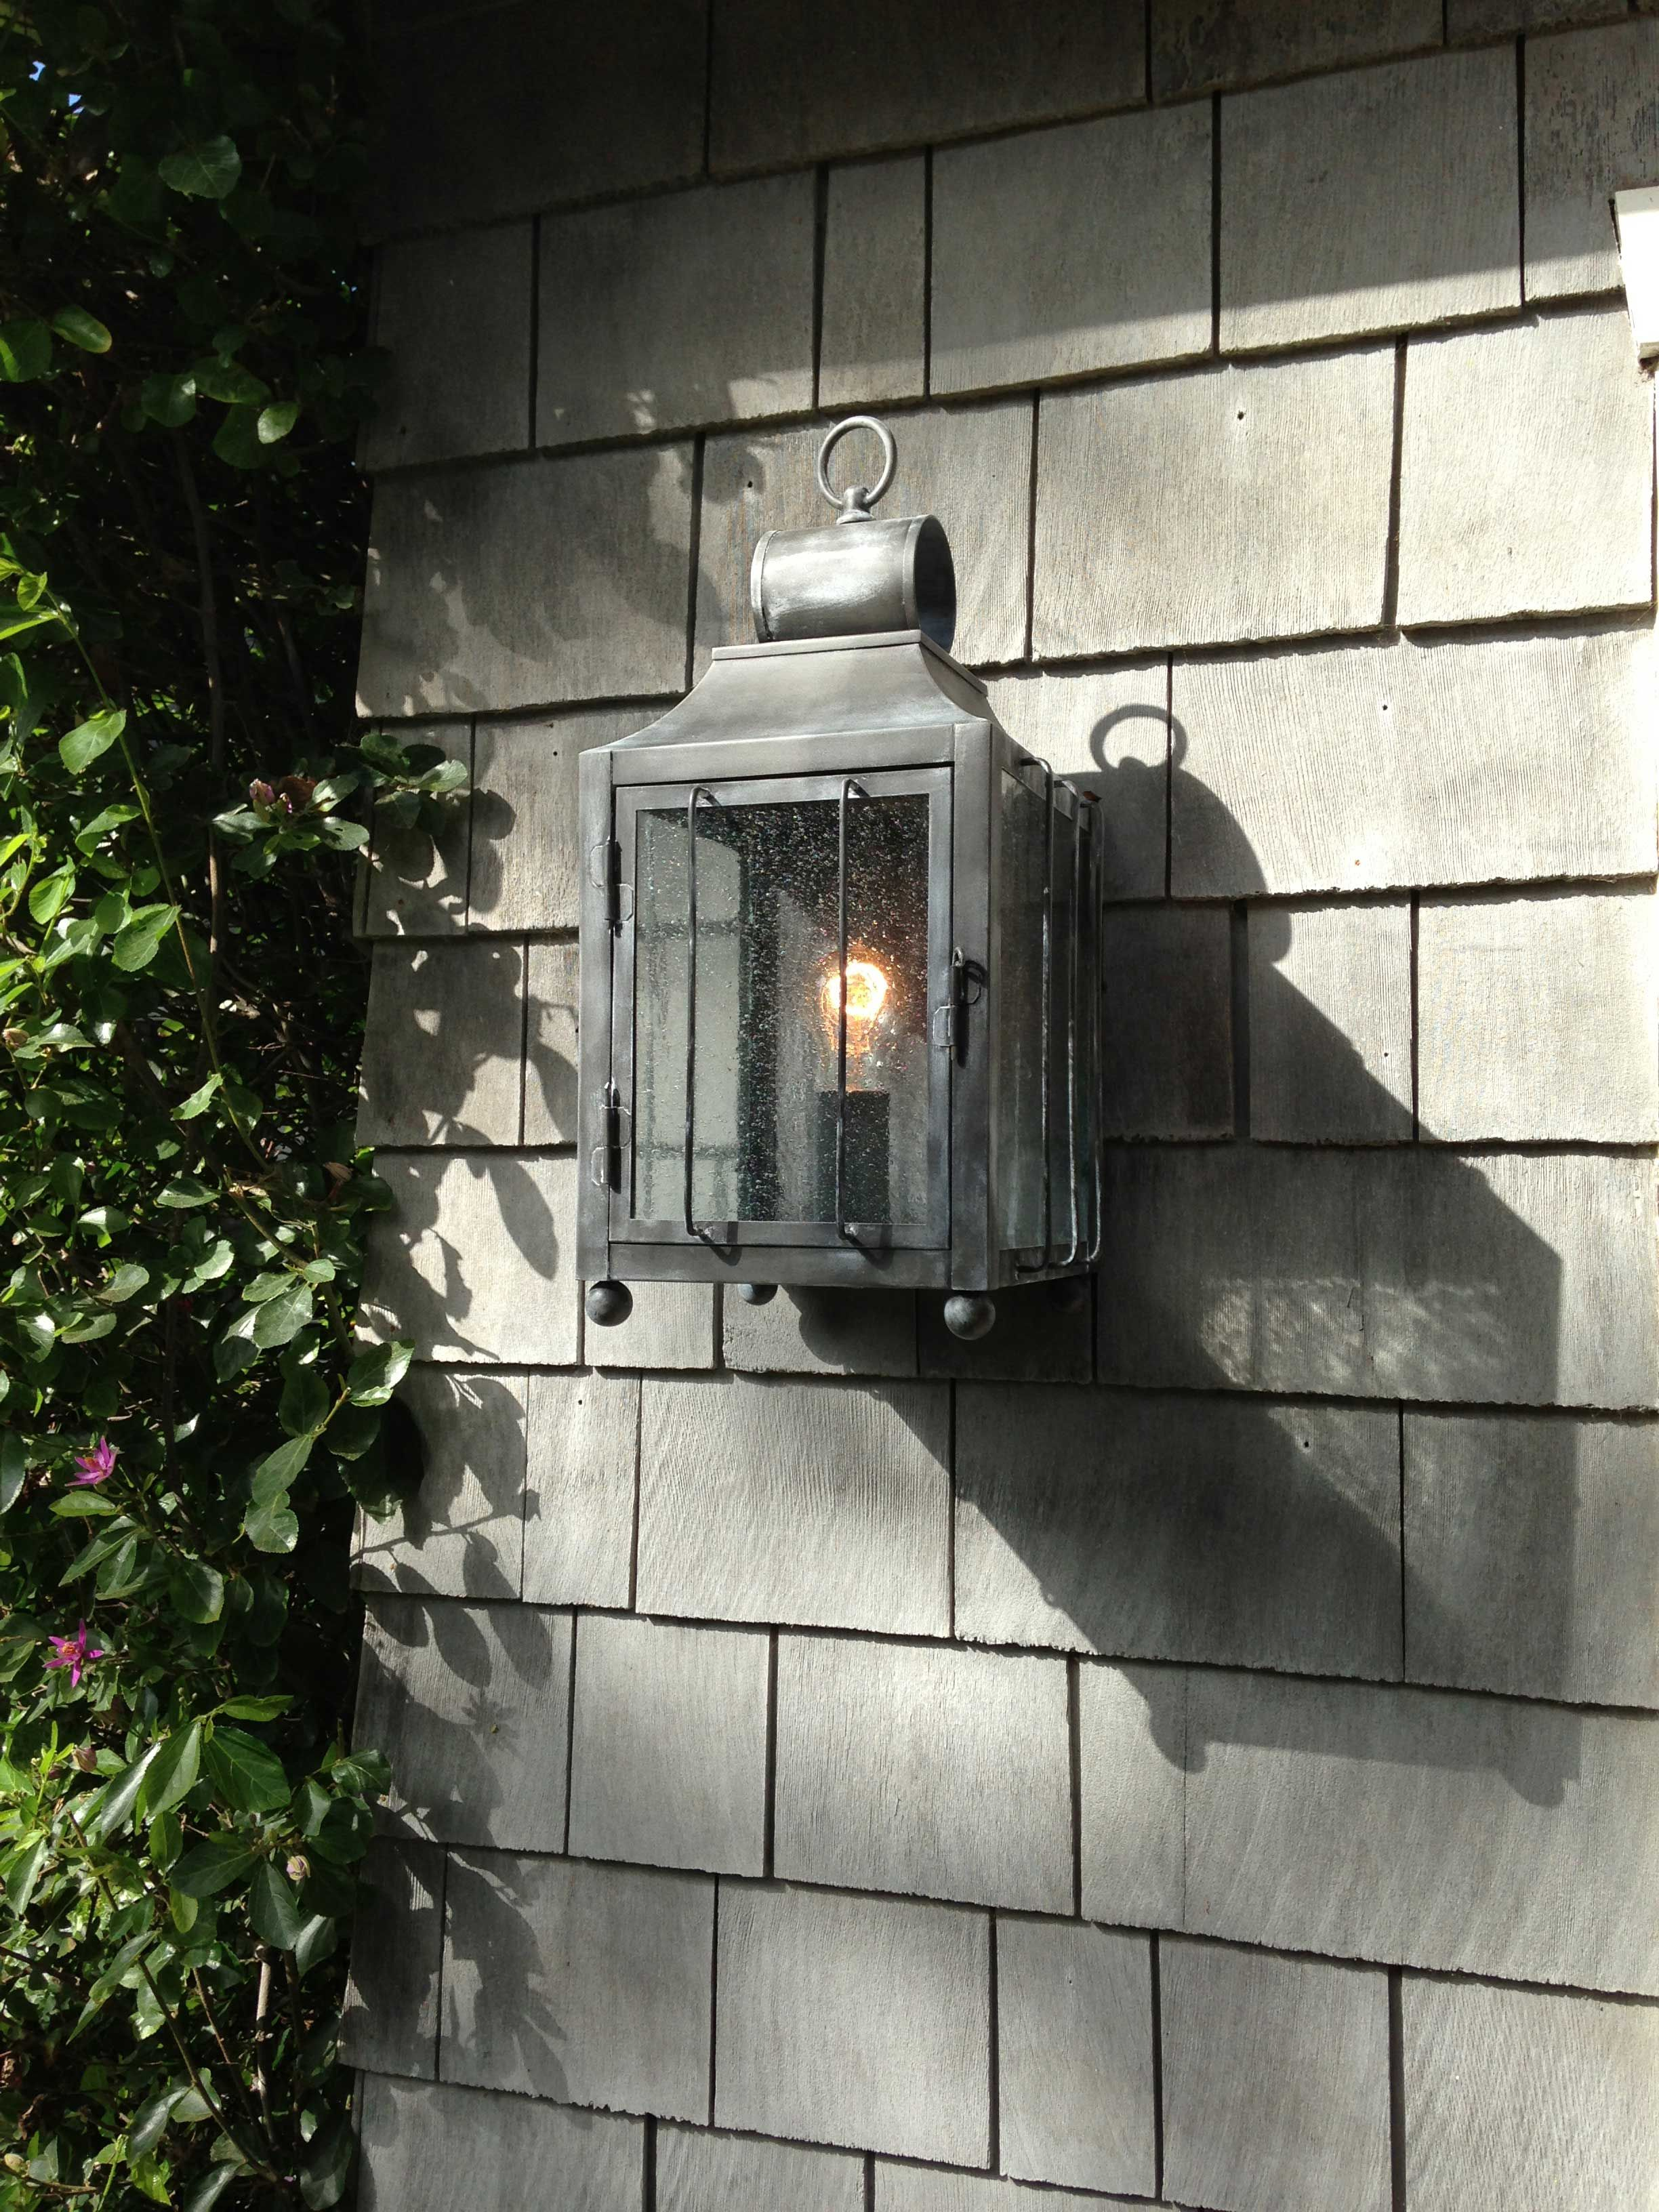 Check Out The Bohicket Wall Light Fixture From The Urban Electric Co.